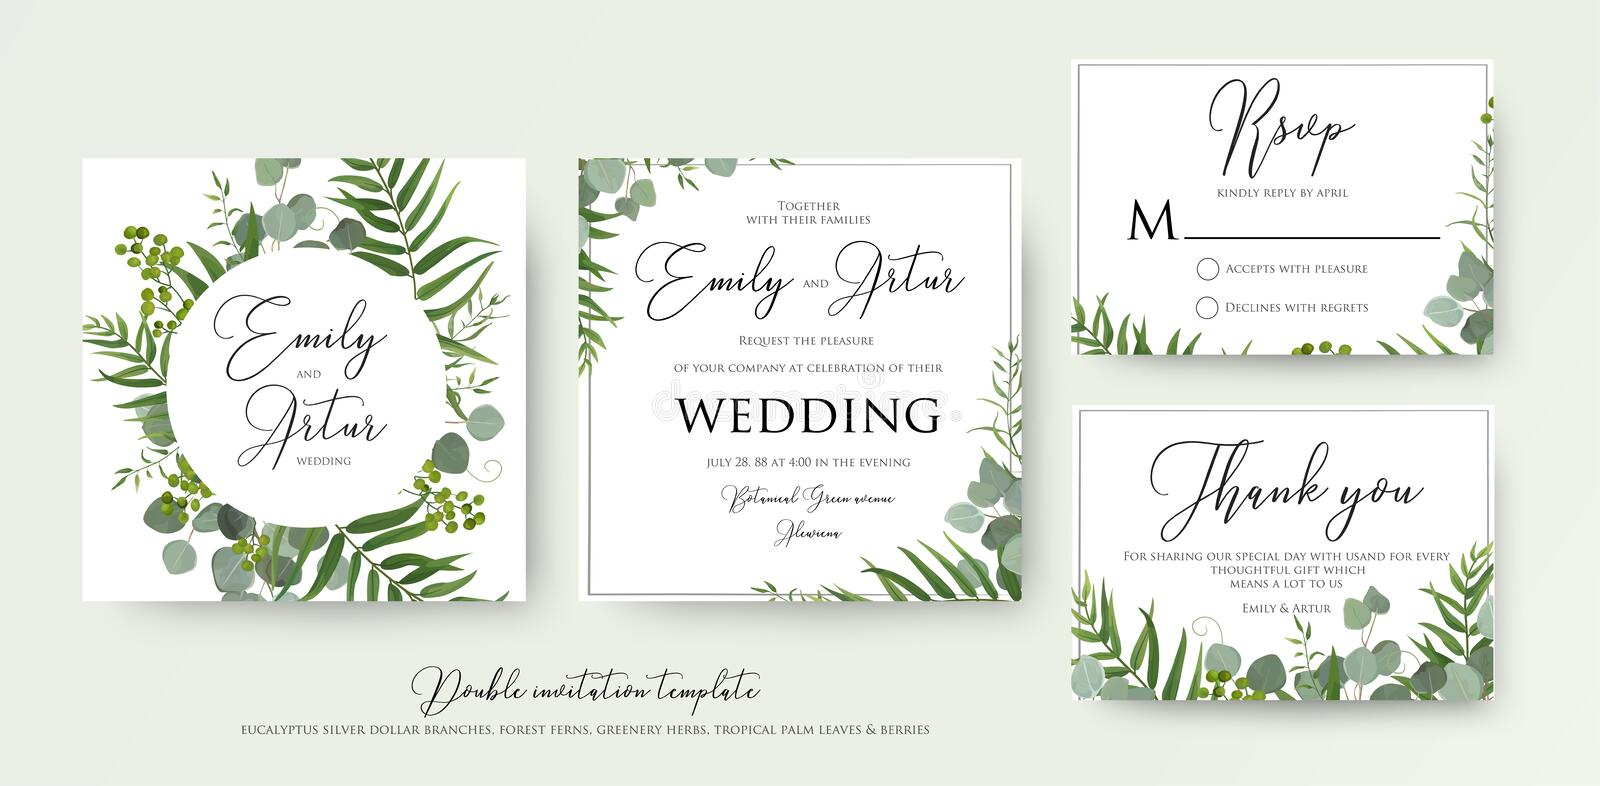 Wedding Invitation, floral invite, thank you, rsvp modern card D vector illustration